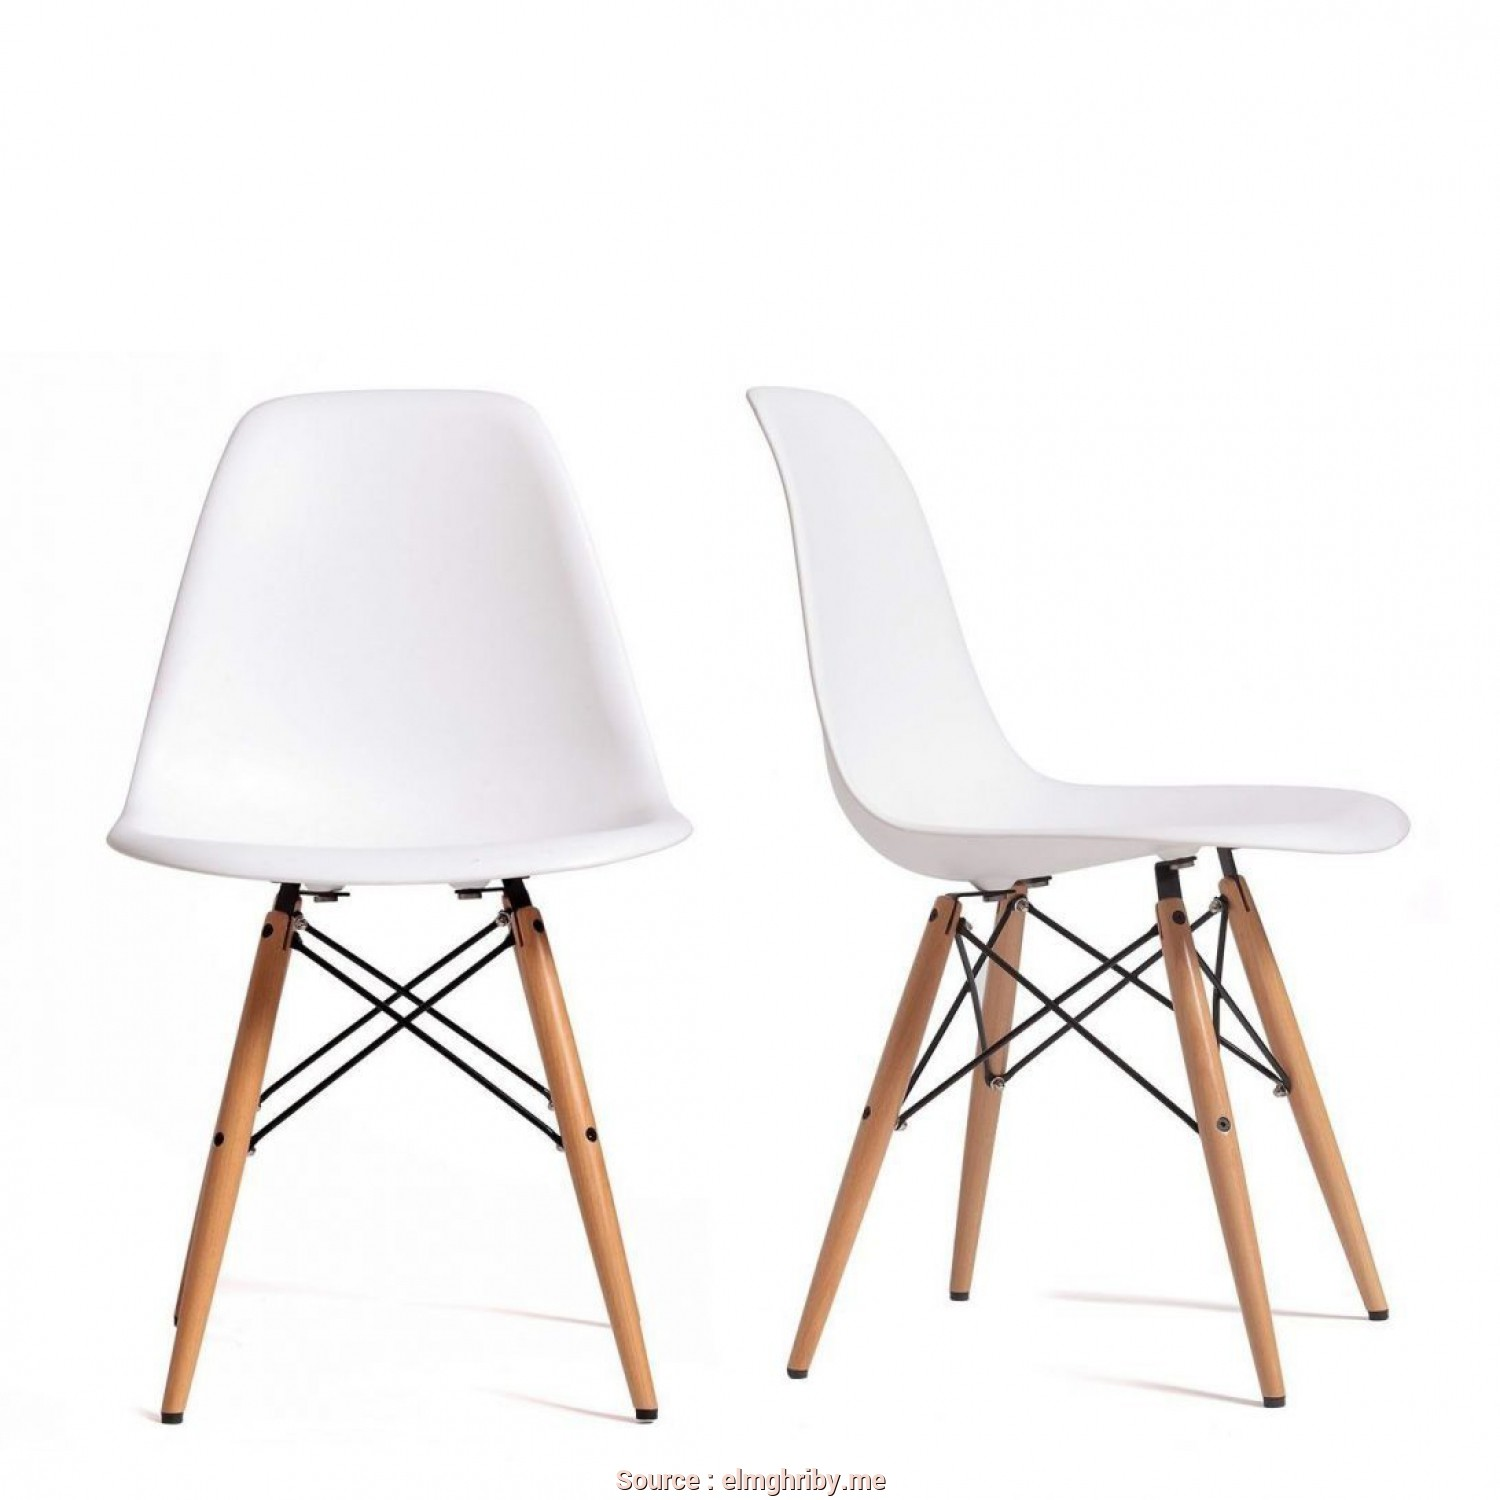 Completare 6 poltroncine bianche ikea jake vintage for Ikea sedie bianche